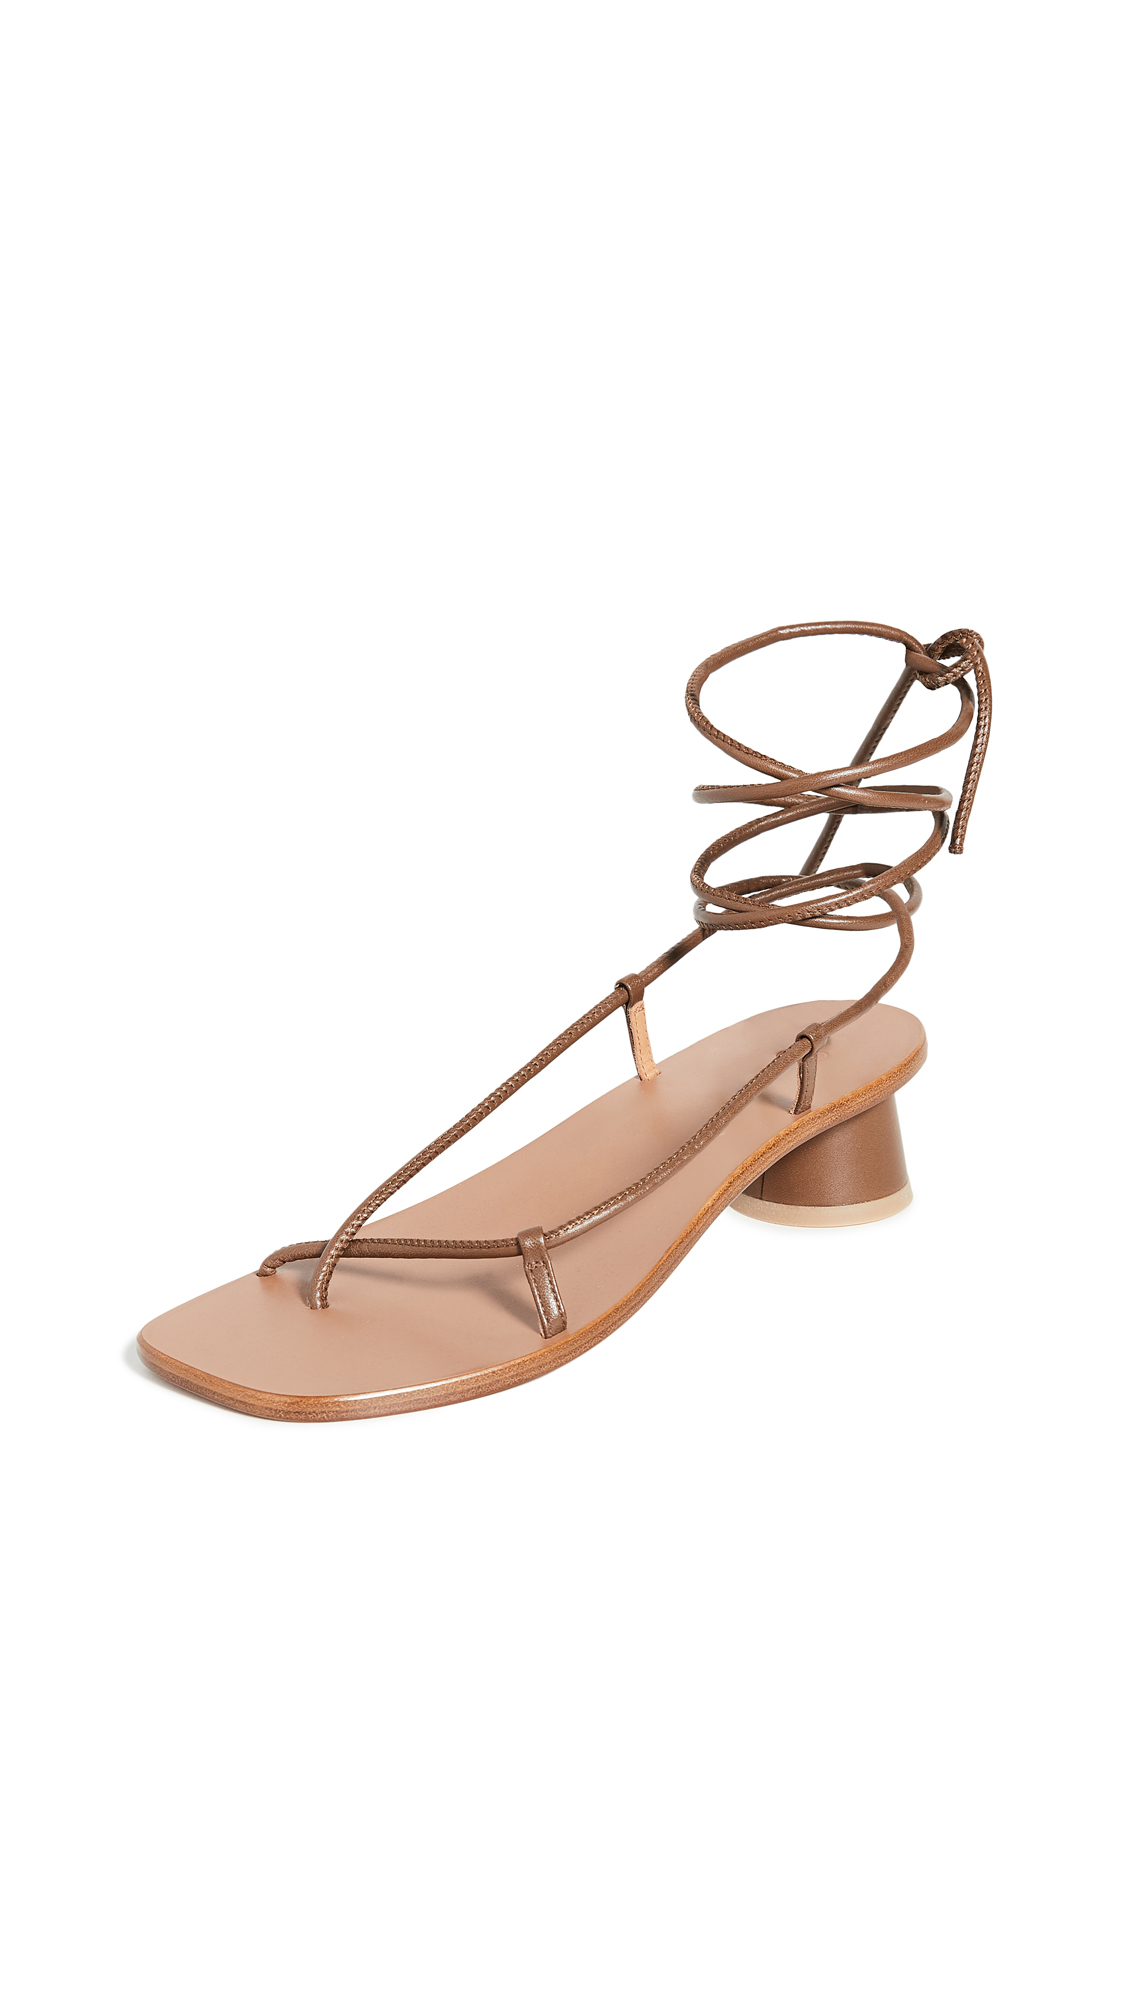 Buy LOQ Olea Strappy Sandals online, shop LOQ